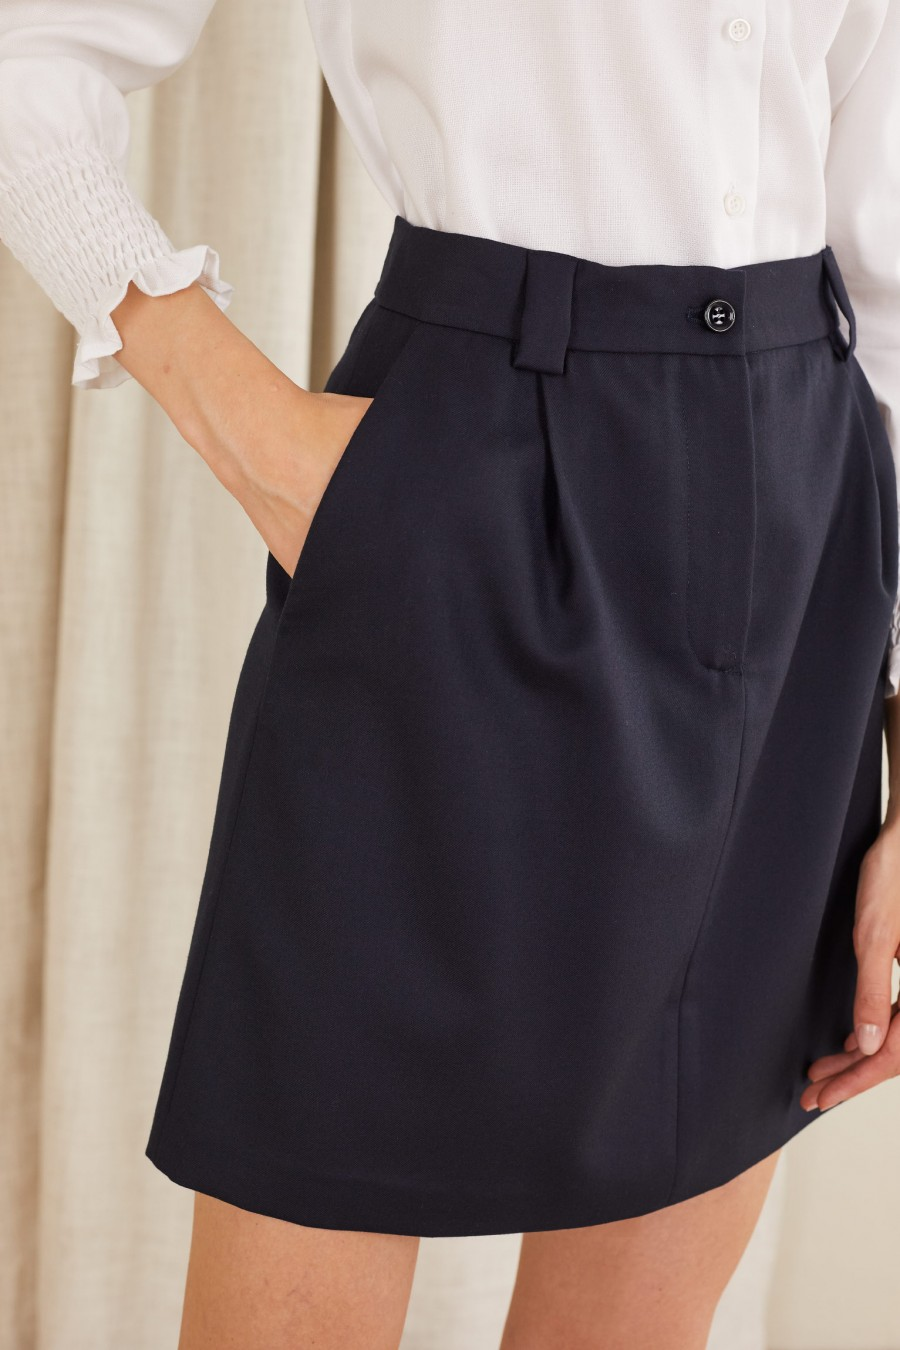 Skirt with pintucks and belt loops